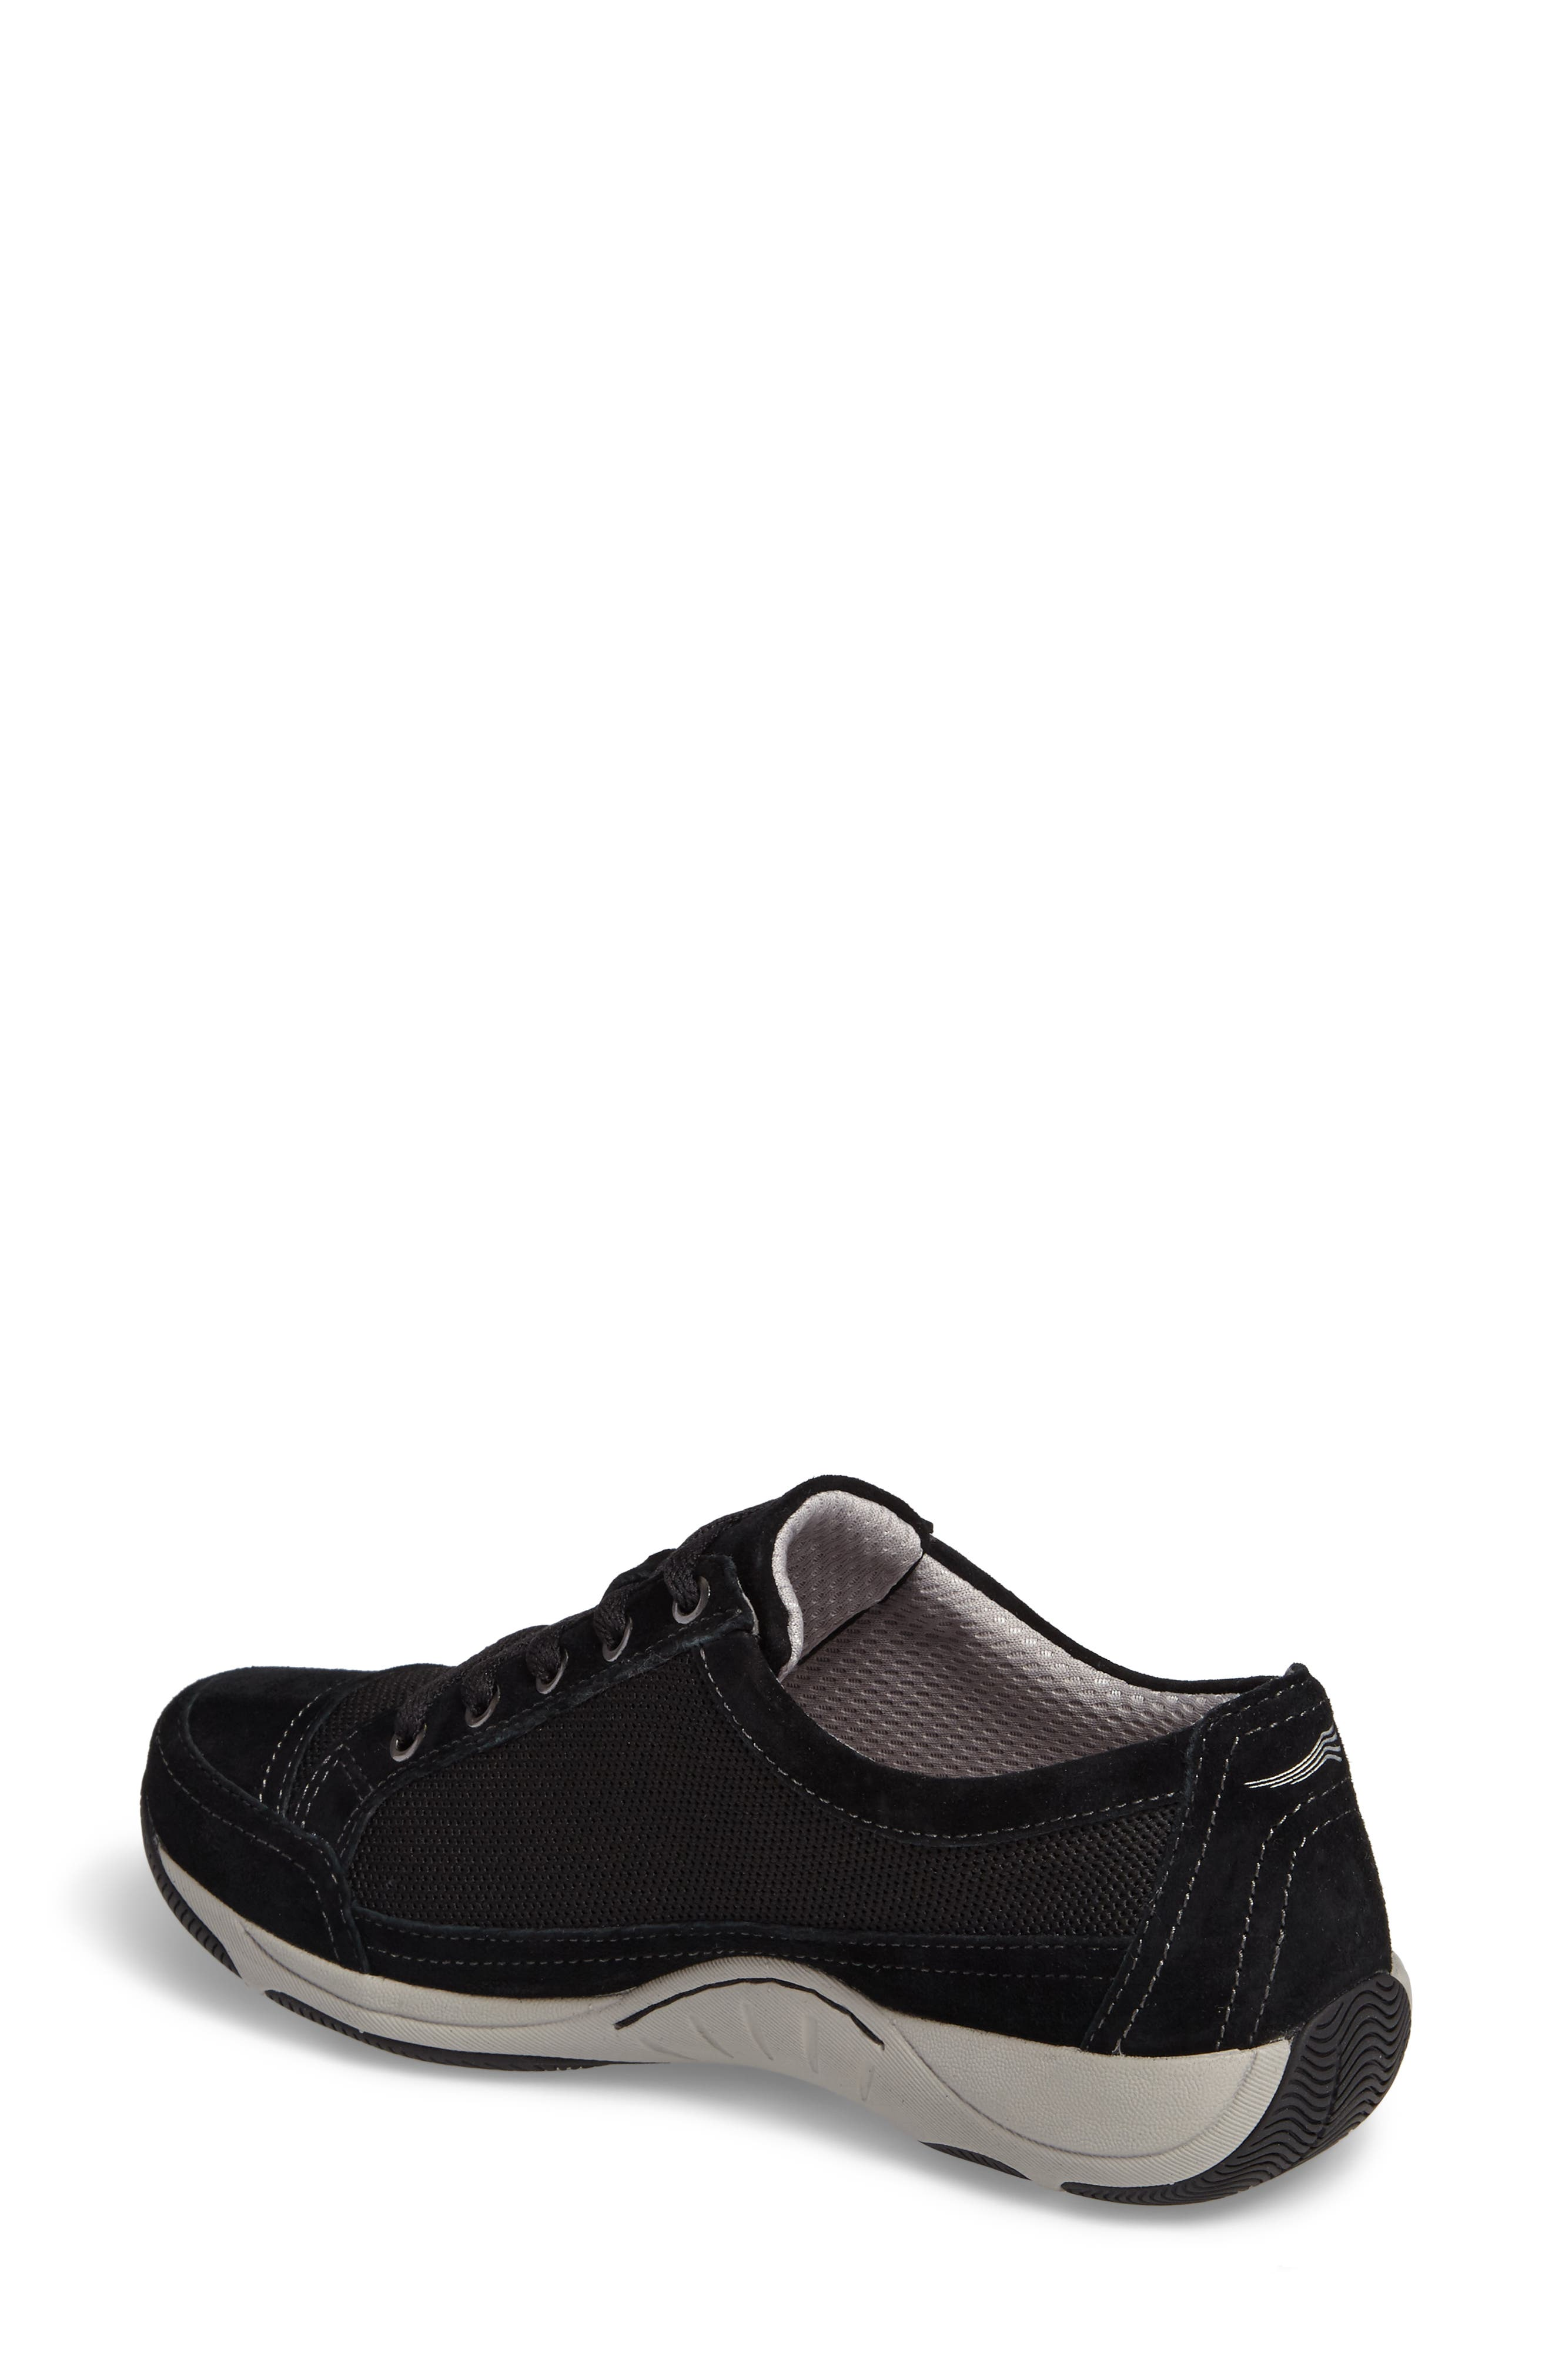 Harmony Sneaker,                             Alternate thumbnail 2, color,                             Black Suede